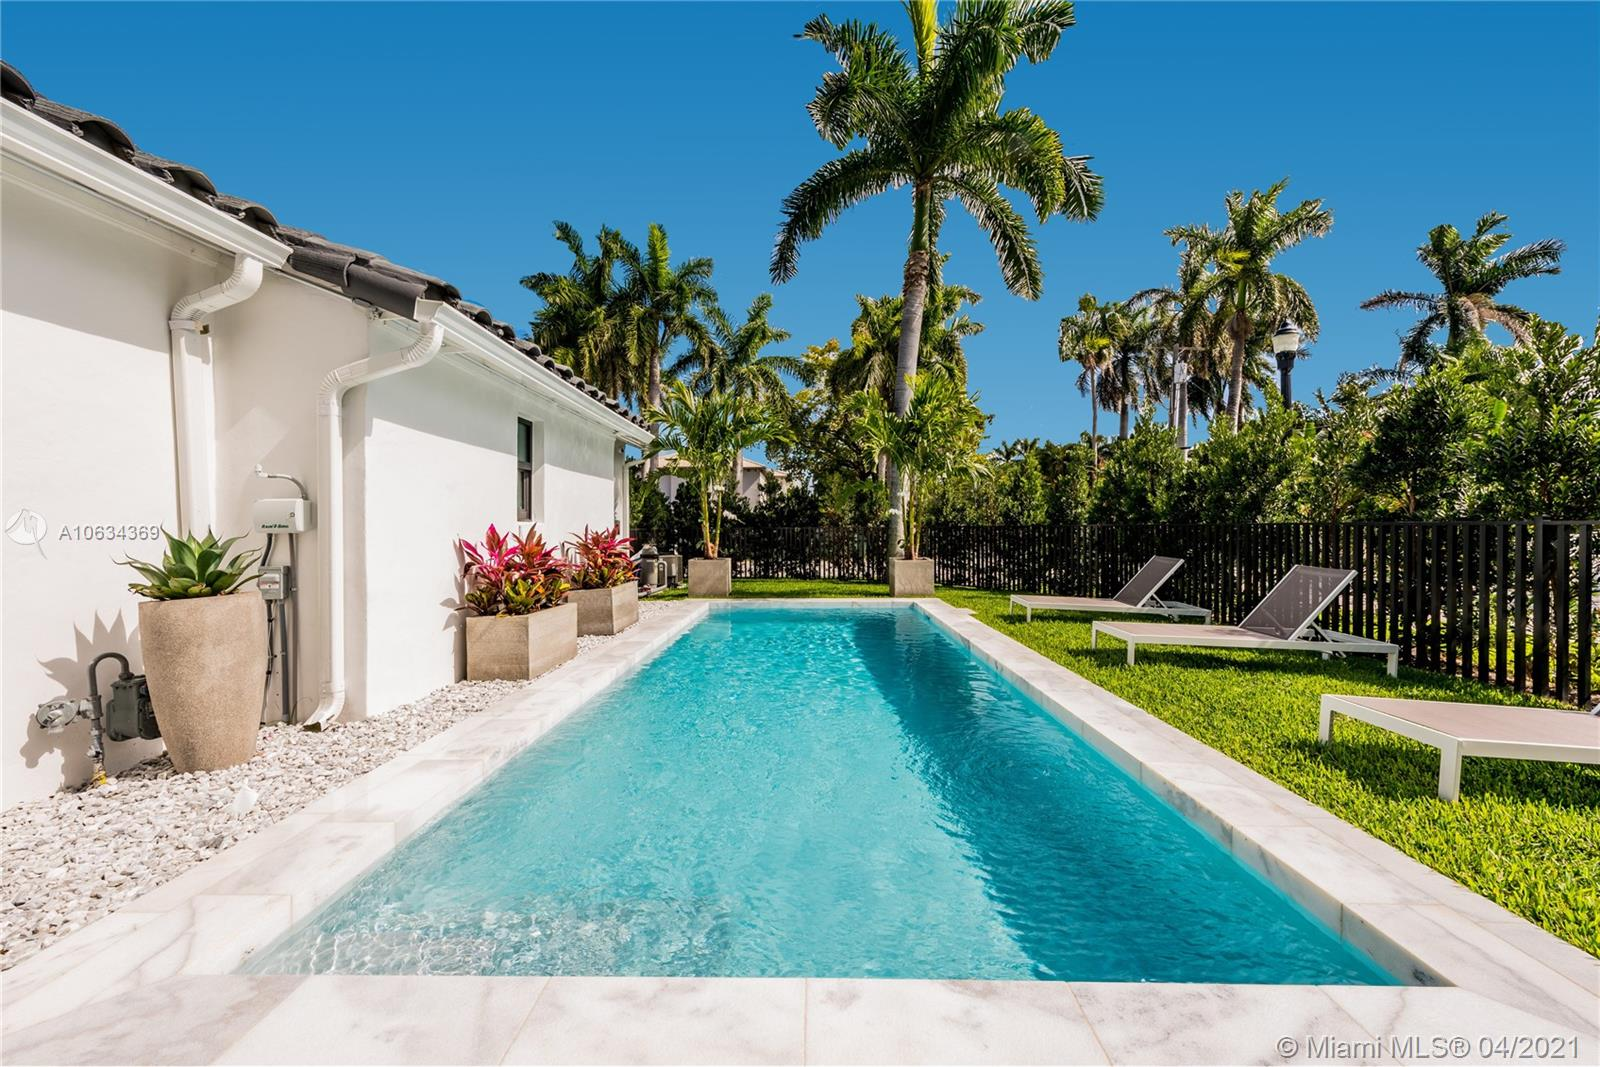 259 S Coconut Ln  For Sale A10634369, FL